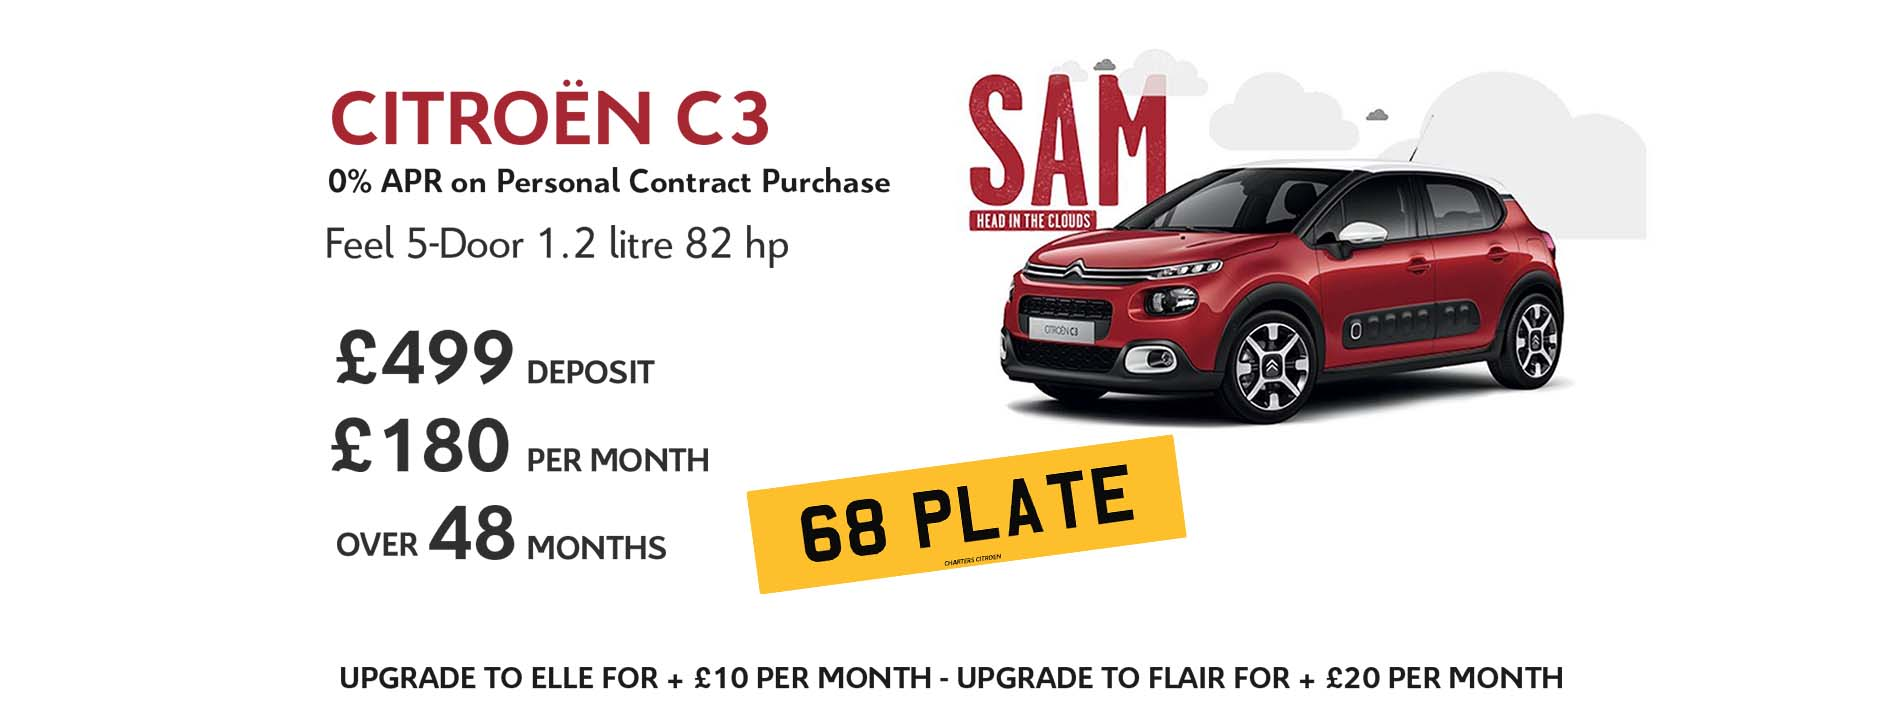 citroen-c3-offers-pcp-car-finance-180-per-month-zero-percent-apr-m-sli